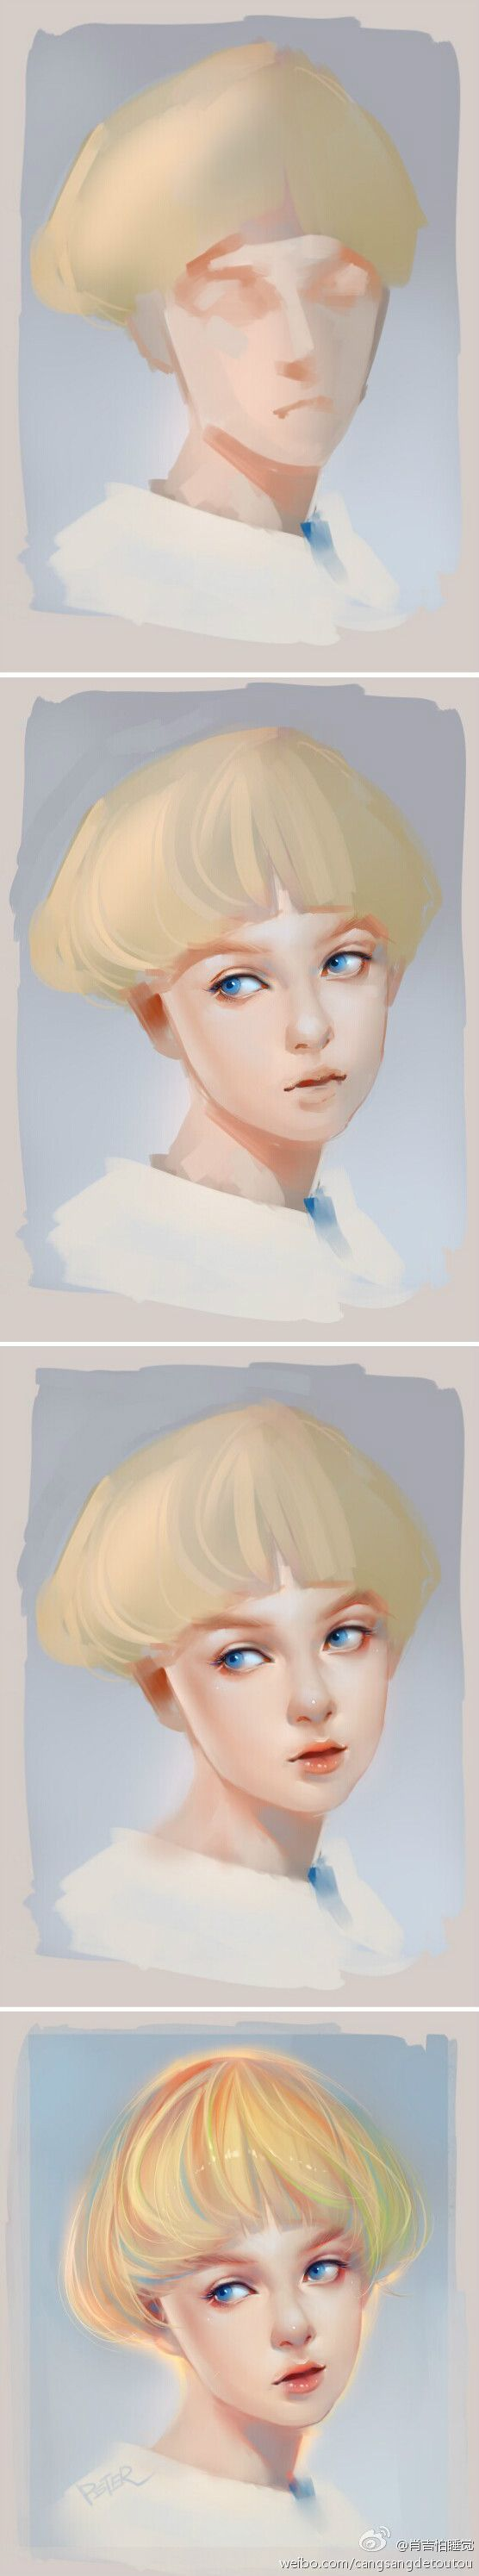 painting step by step2 #digitalpainting